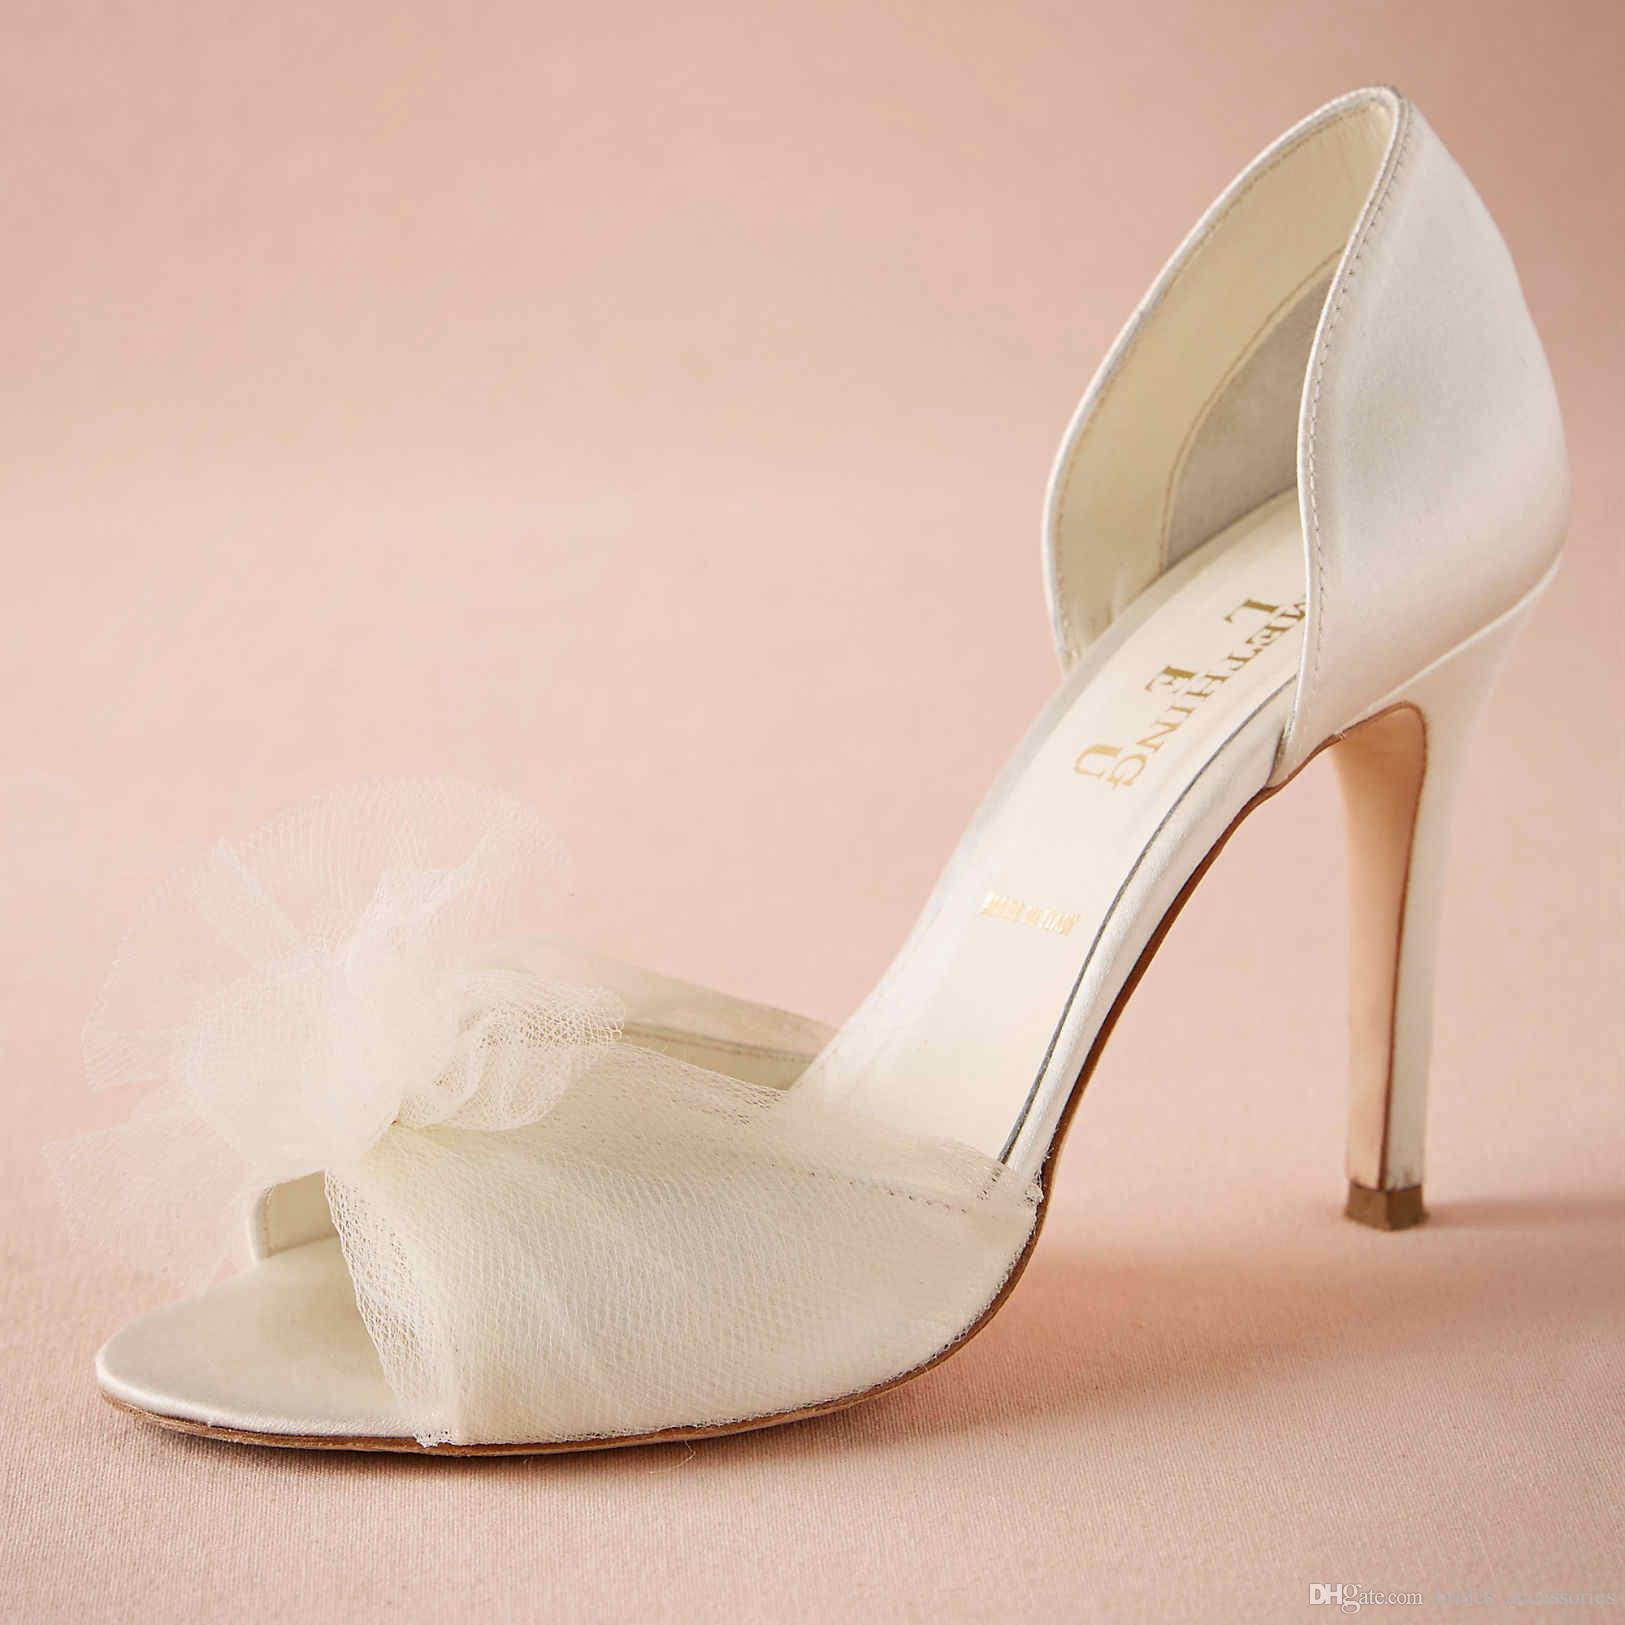 Beautiful Ivory Tulle Flower Wedding Shoes Made To Order Wedding Pumps Satin Upper  Slip Ons Party Dance 3.5 High Heels Women Sandals Wrapped Heel Dyeable Shoes  Flats ...